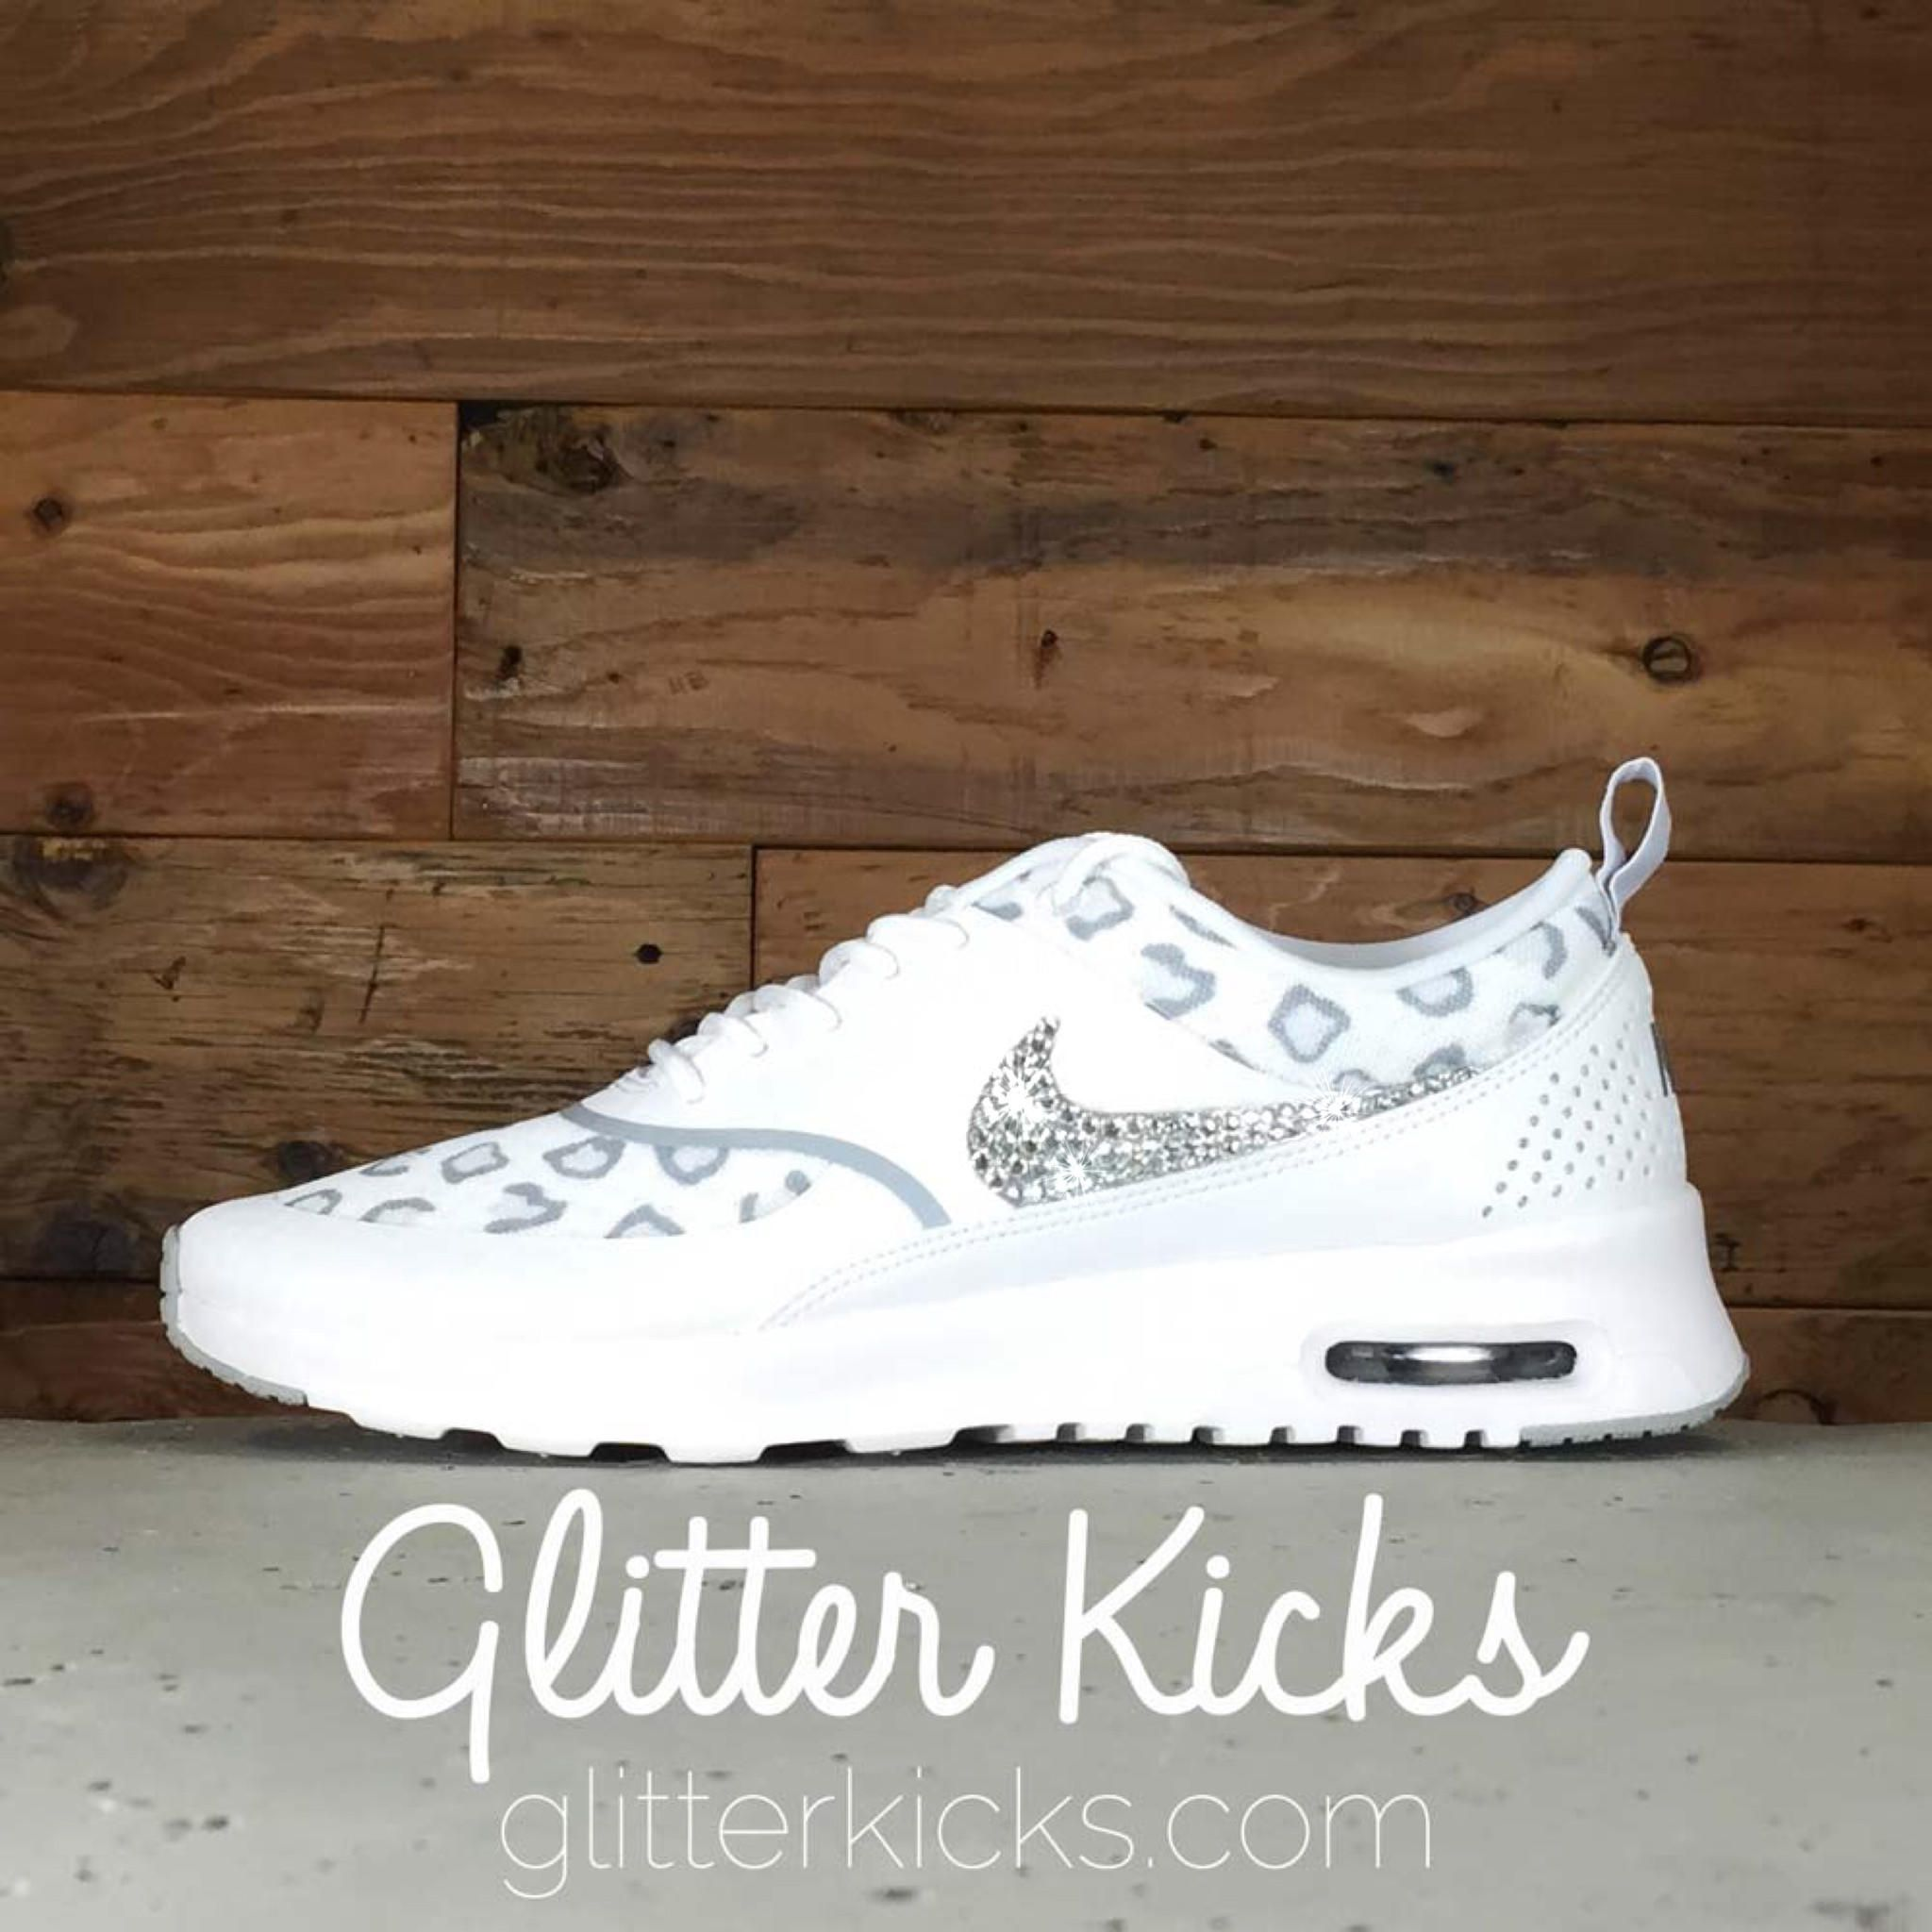 sports shoes 8e89c f3aa6 Nike Air Max Thea Print Running Shoes By Glitter Kicks ...